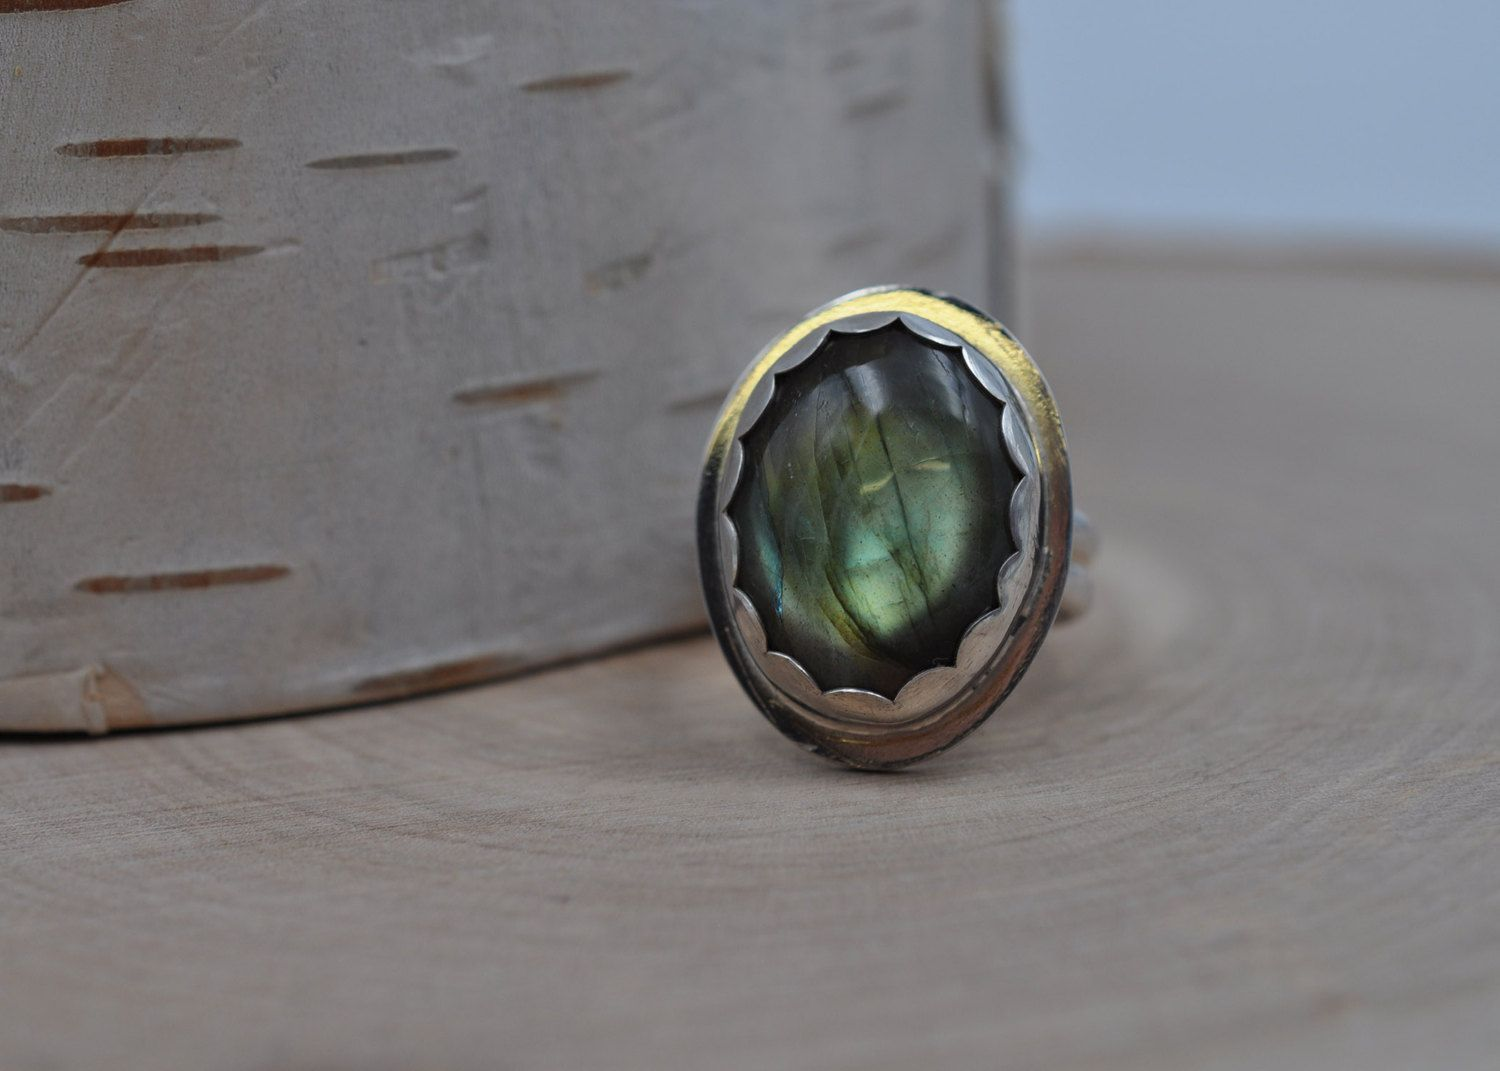 Simple Labradorite Ring with a Bright Green Flash set in Sterling Silver, Size 7 R0018 by TranquilSkyJewelry on Etsy